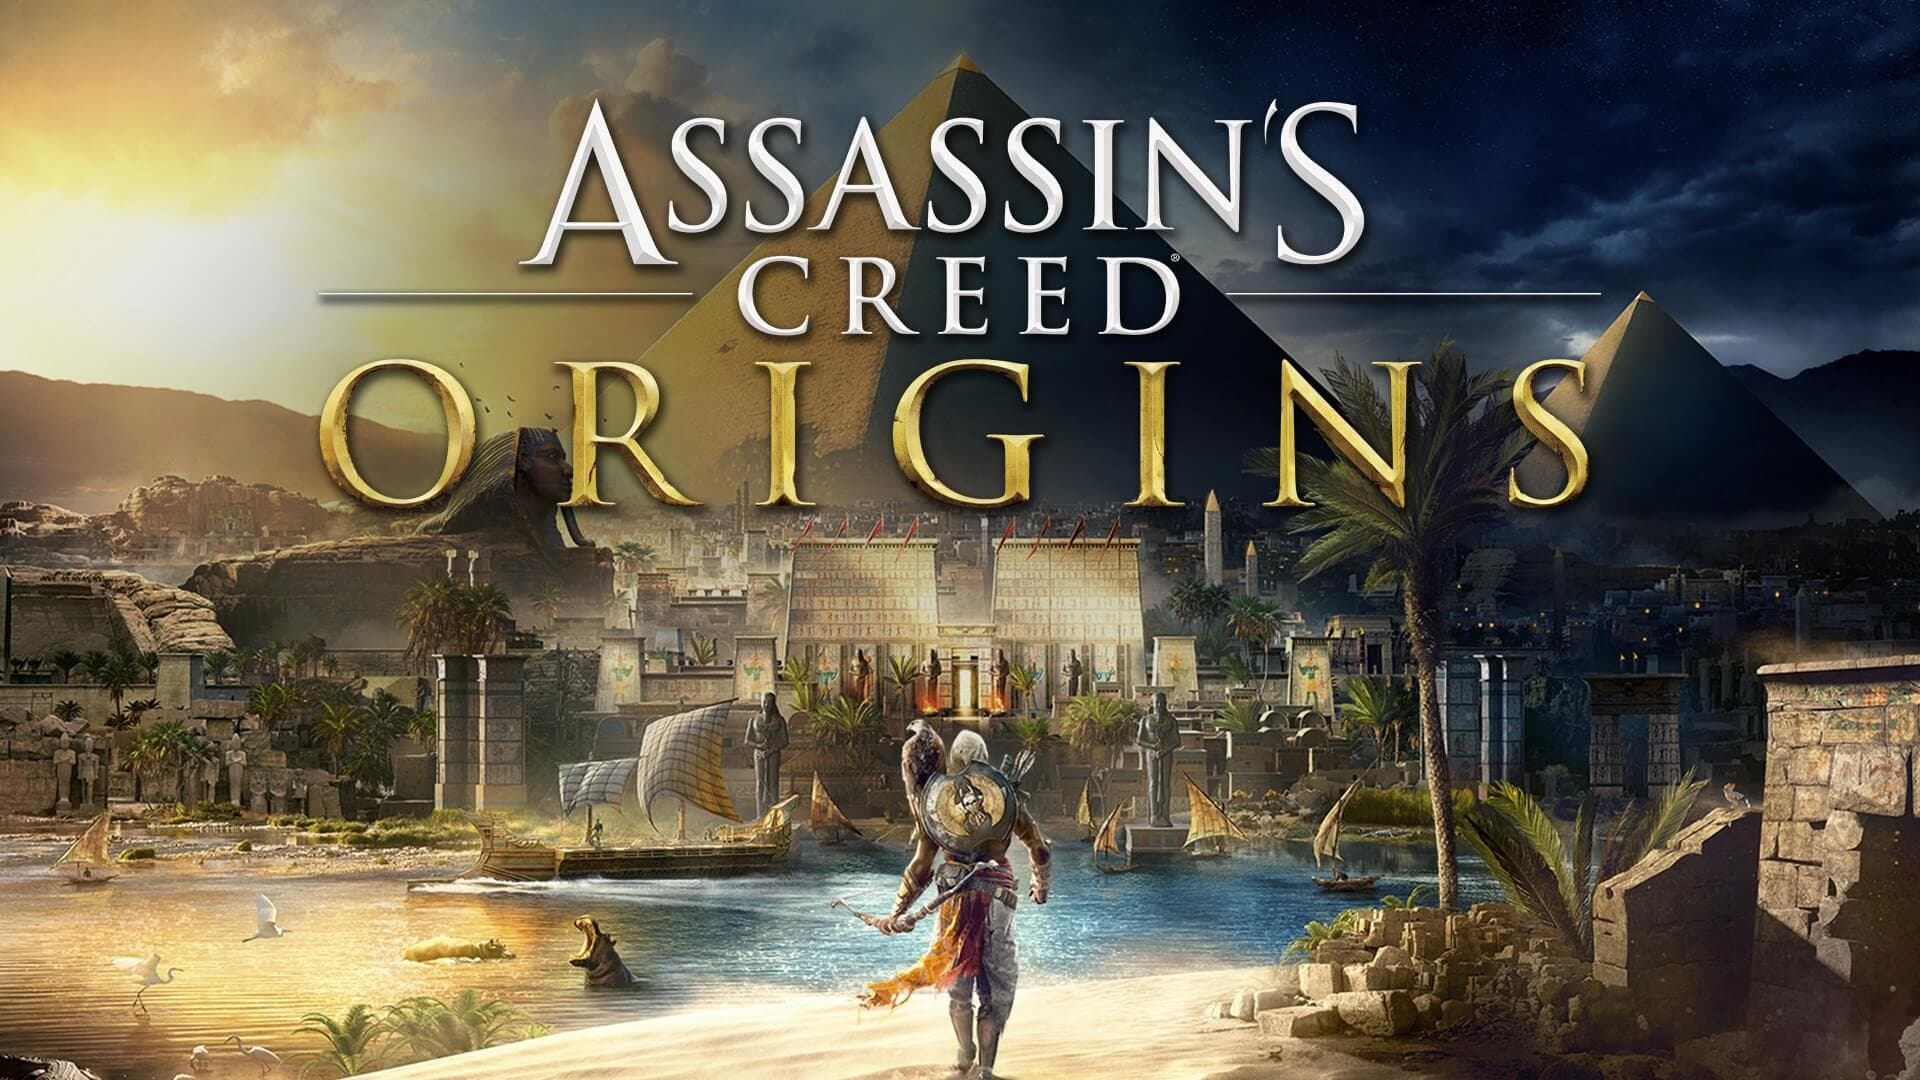 Aprovecha esta oferta de Assassin's Creed: Origins (PC) 6